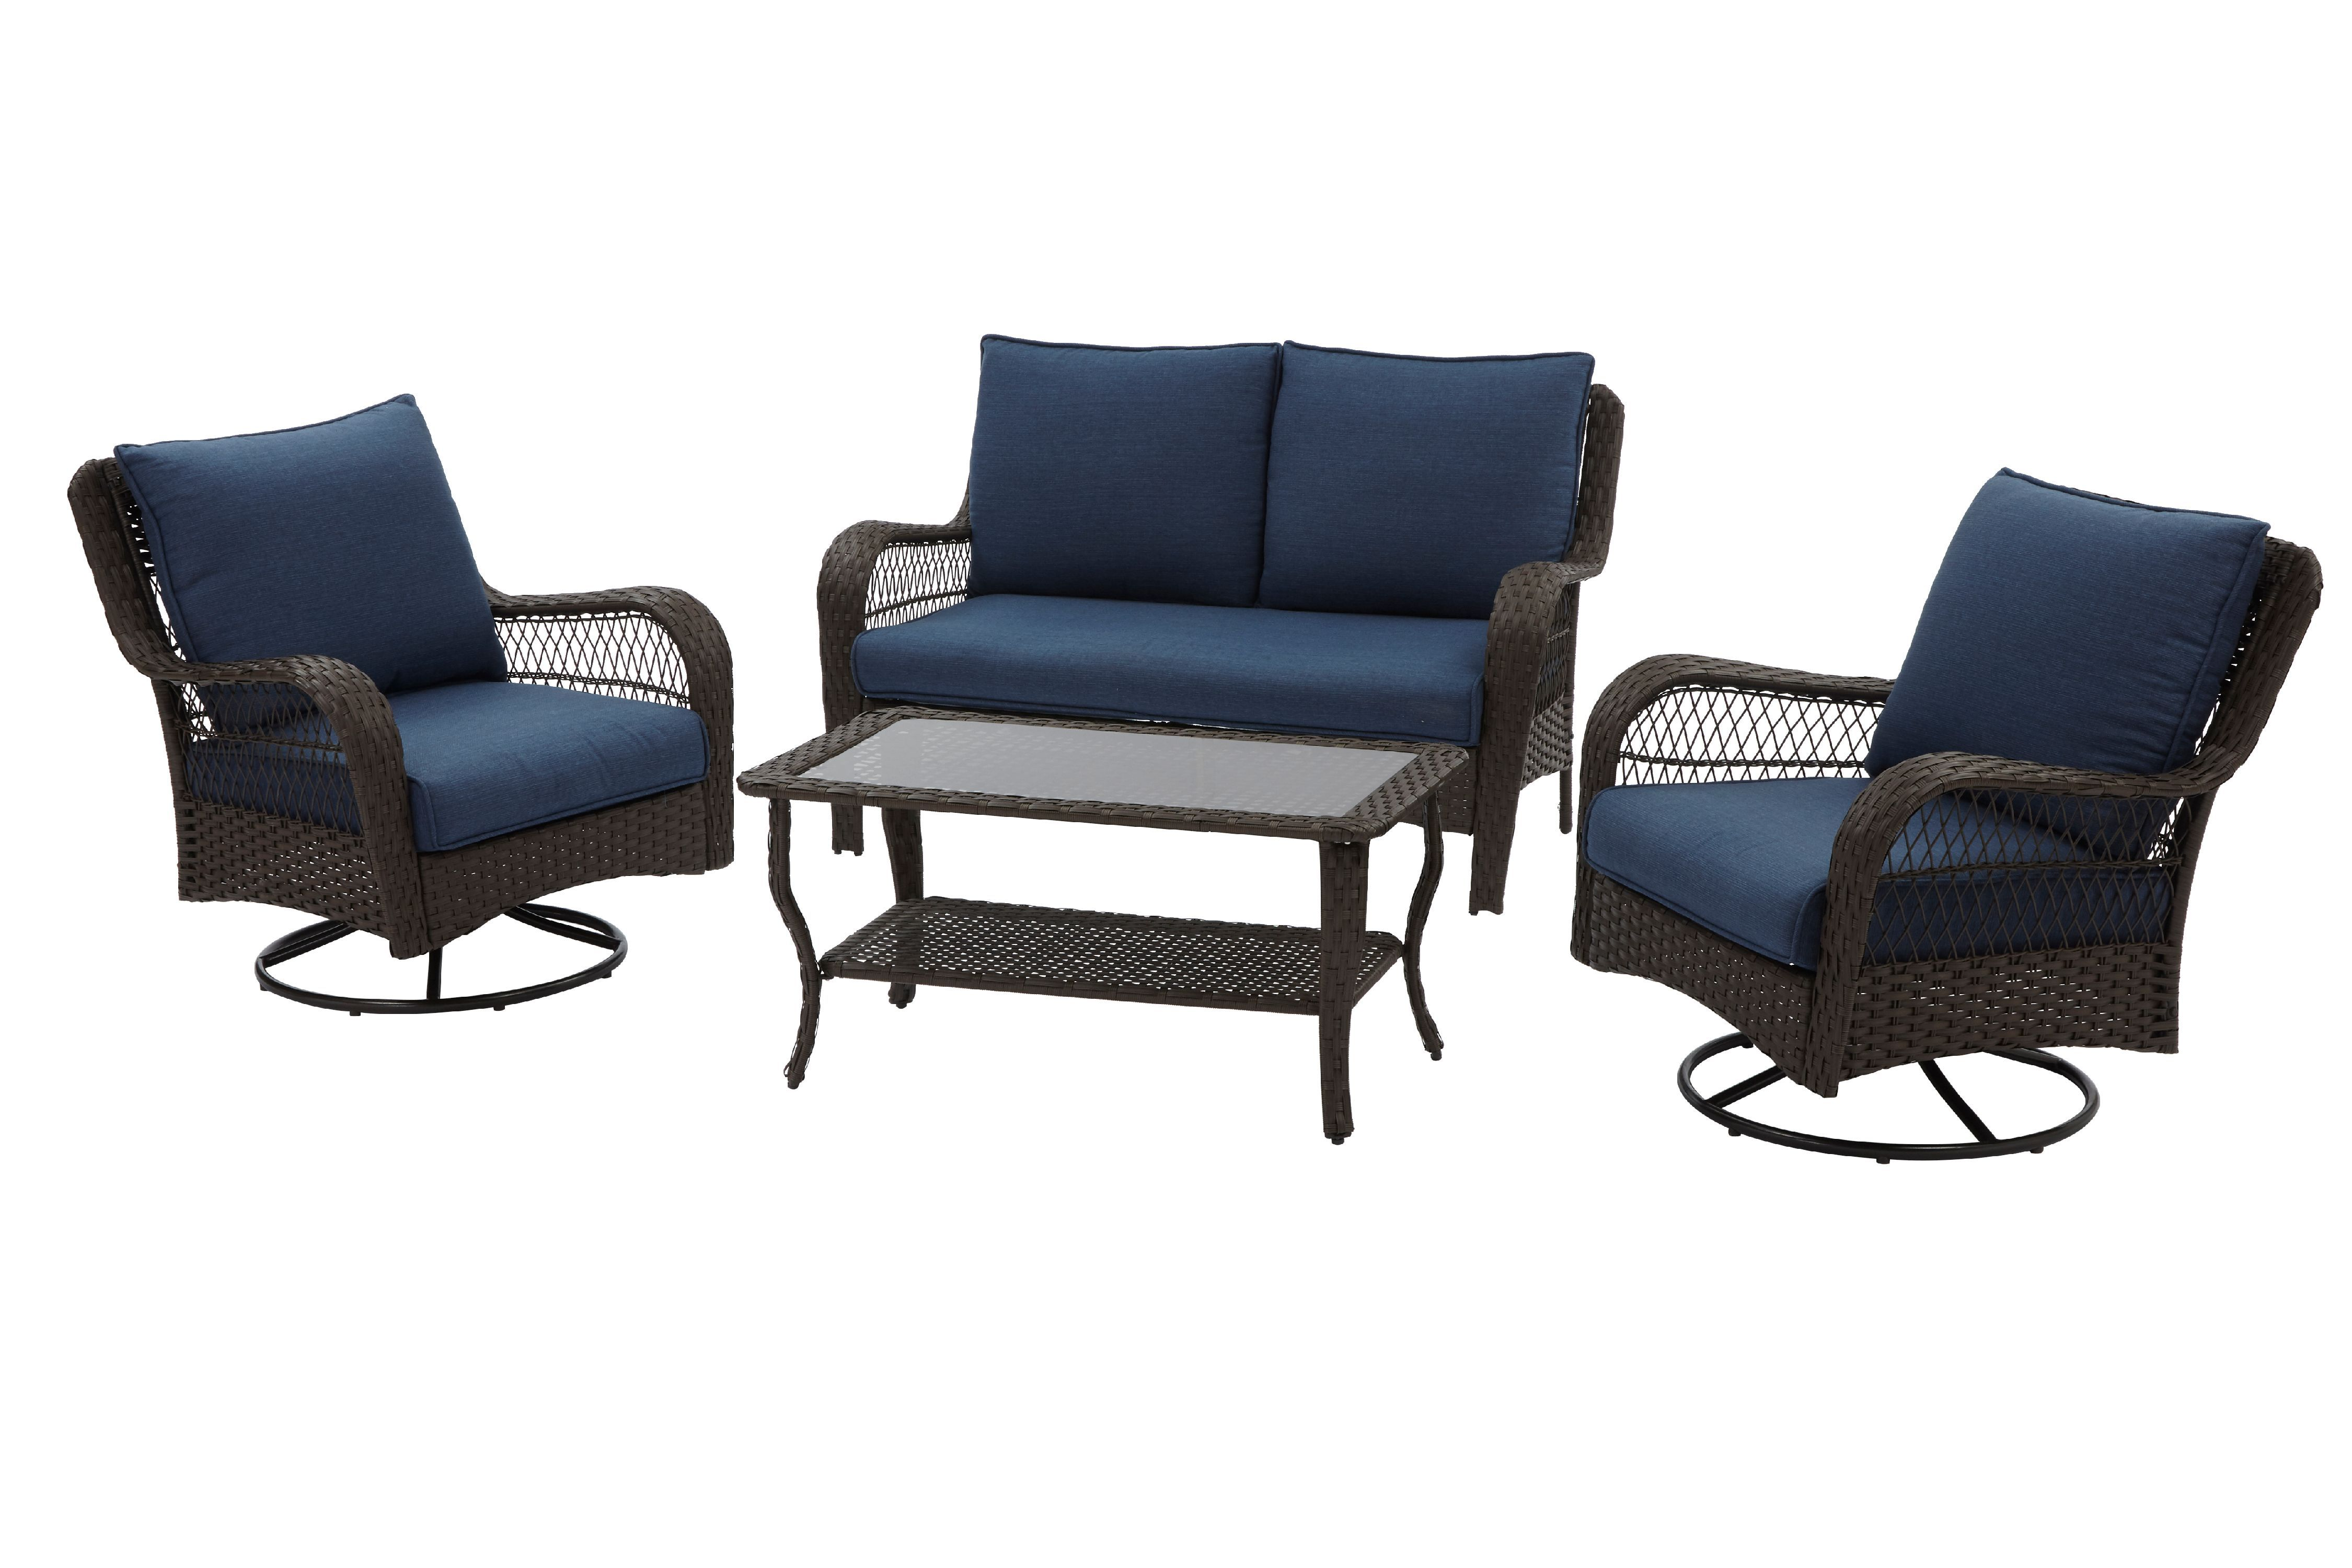 Patio & Garden in 2020 Patio furniture conversation sets